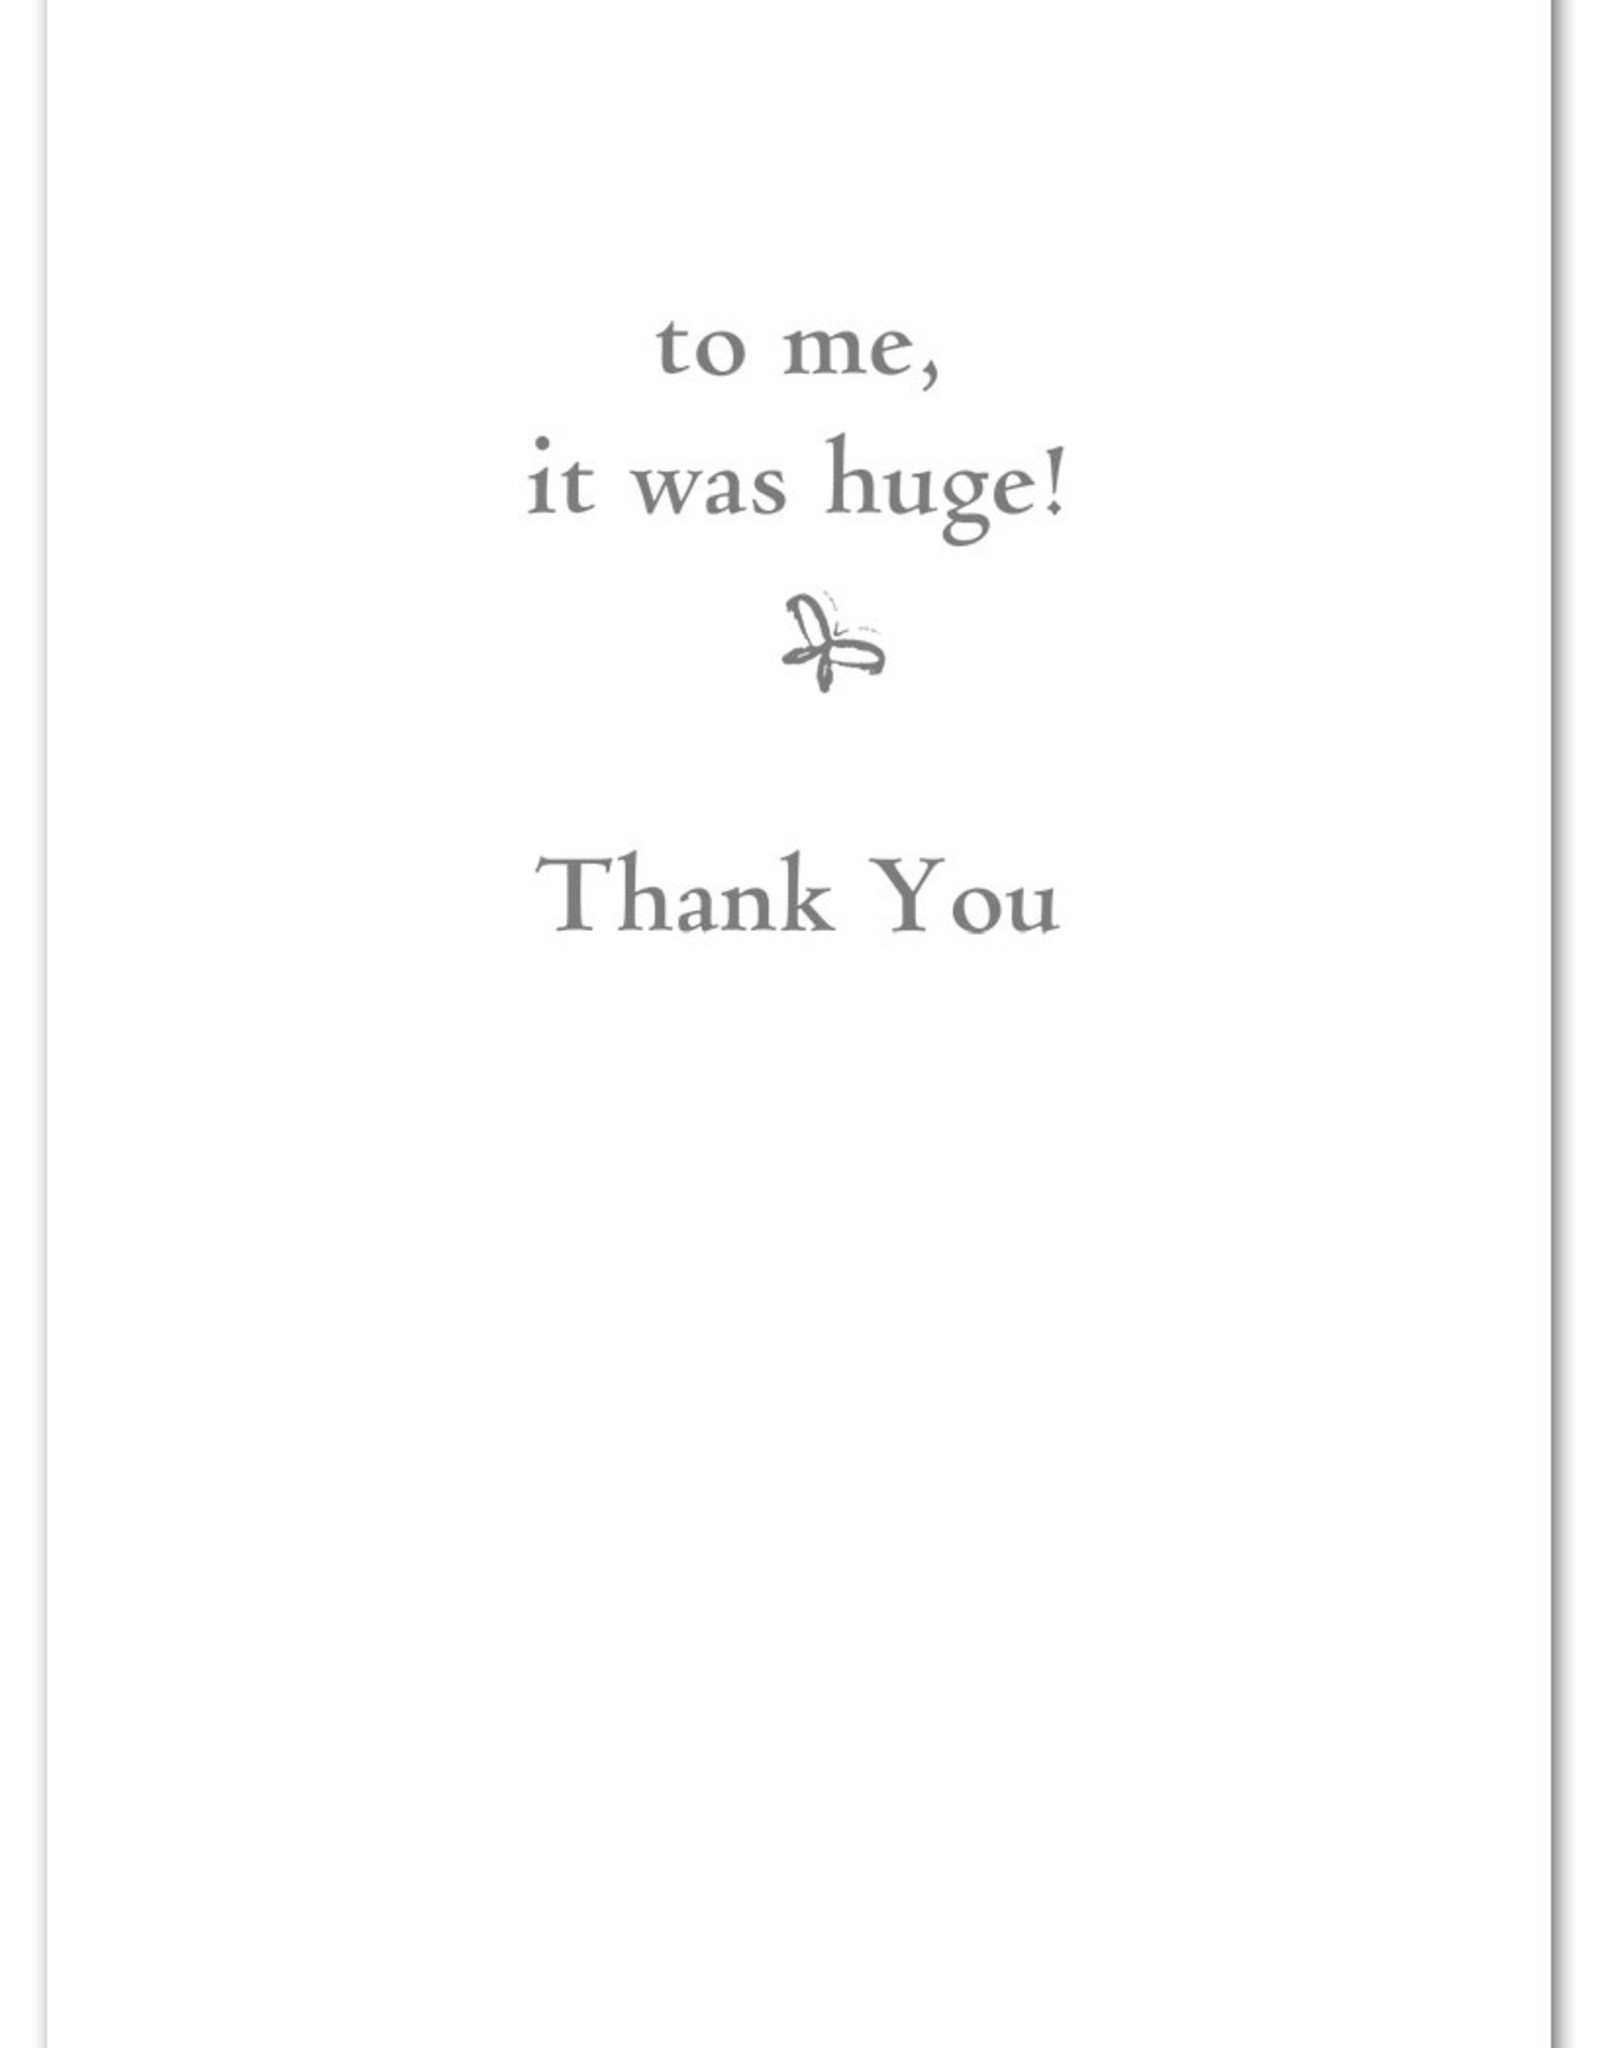 Cardthartic Cardthartic - To You, It Many Have Been A Little Thing Thank You Card